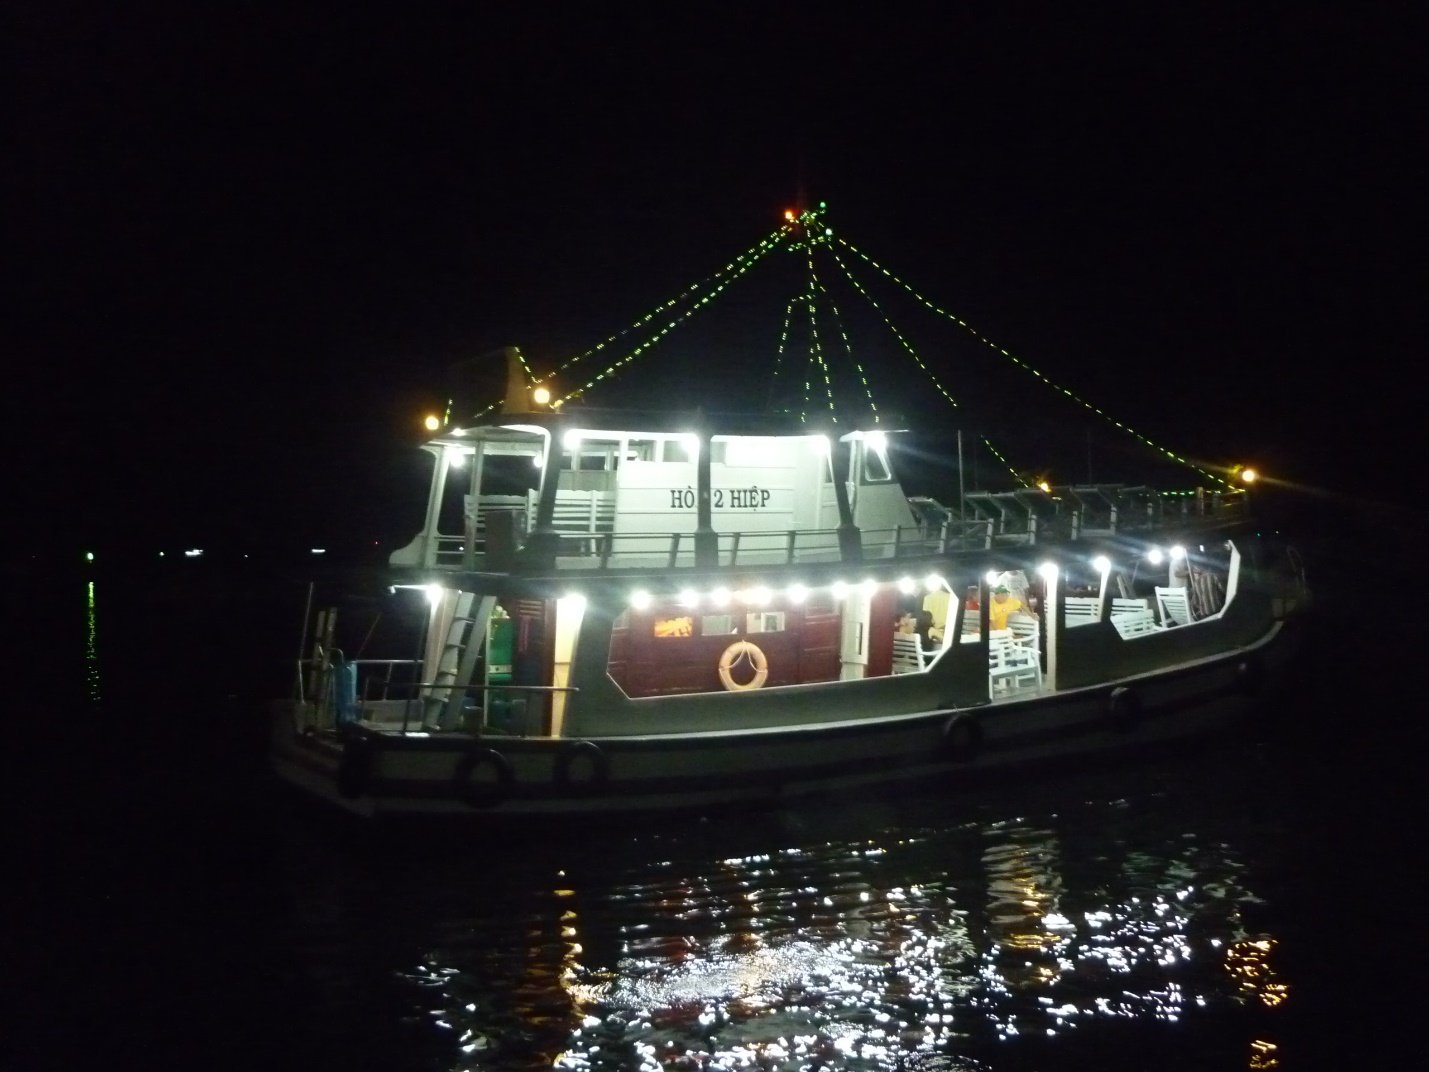 The boat which serves tourists to fish squids at night in Halong Bay